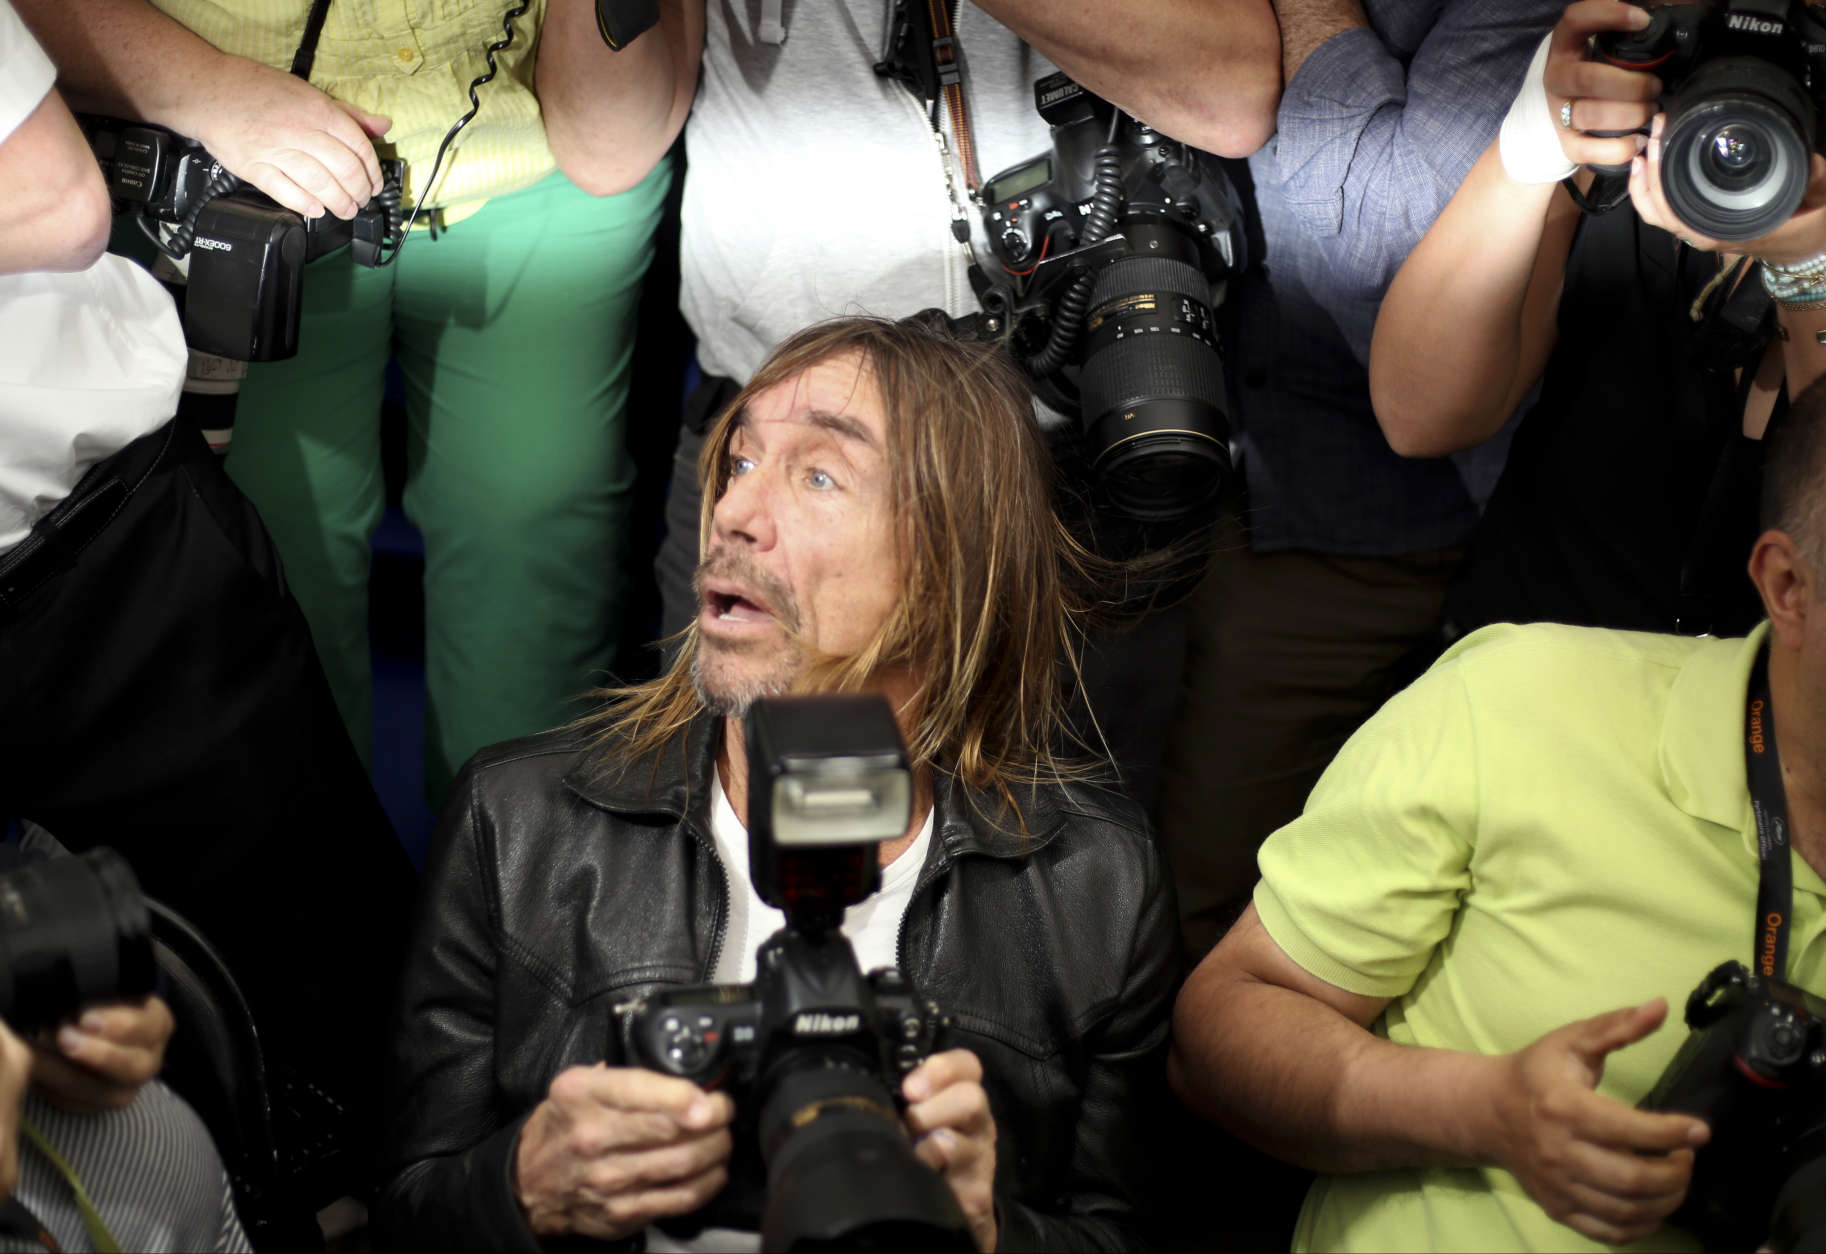 Singer Iggy Pop poses for photographers during a photo call for the film Gimme Danger at the 69th international film festival, Cannes, southern France, Thursday, May 19, 2016. (AP Photo/Joel Ryan)